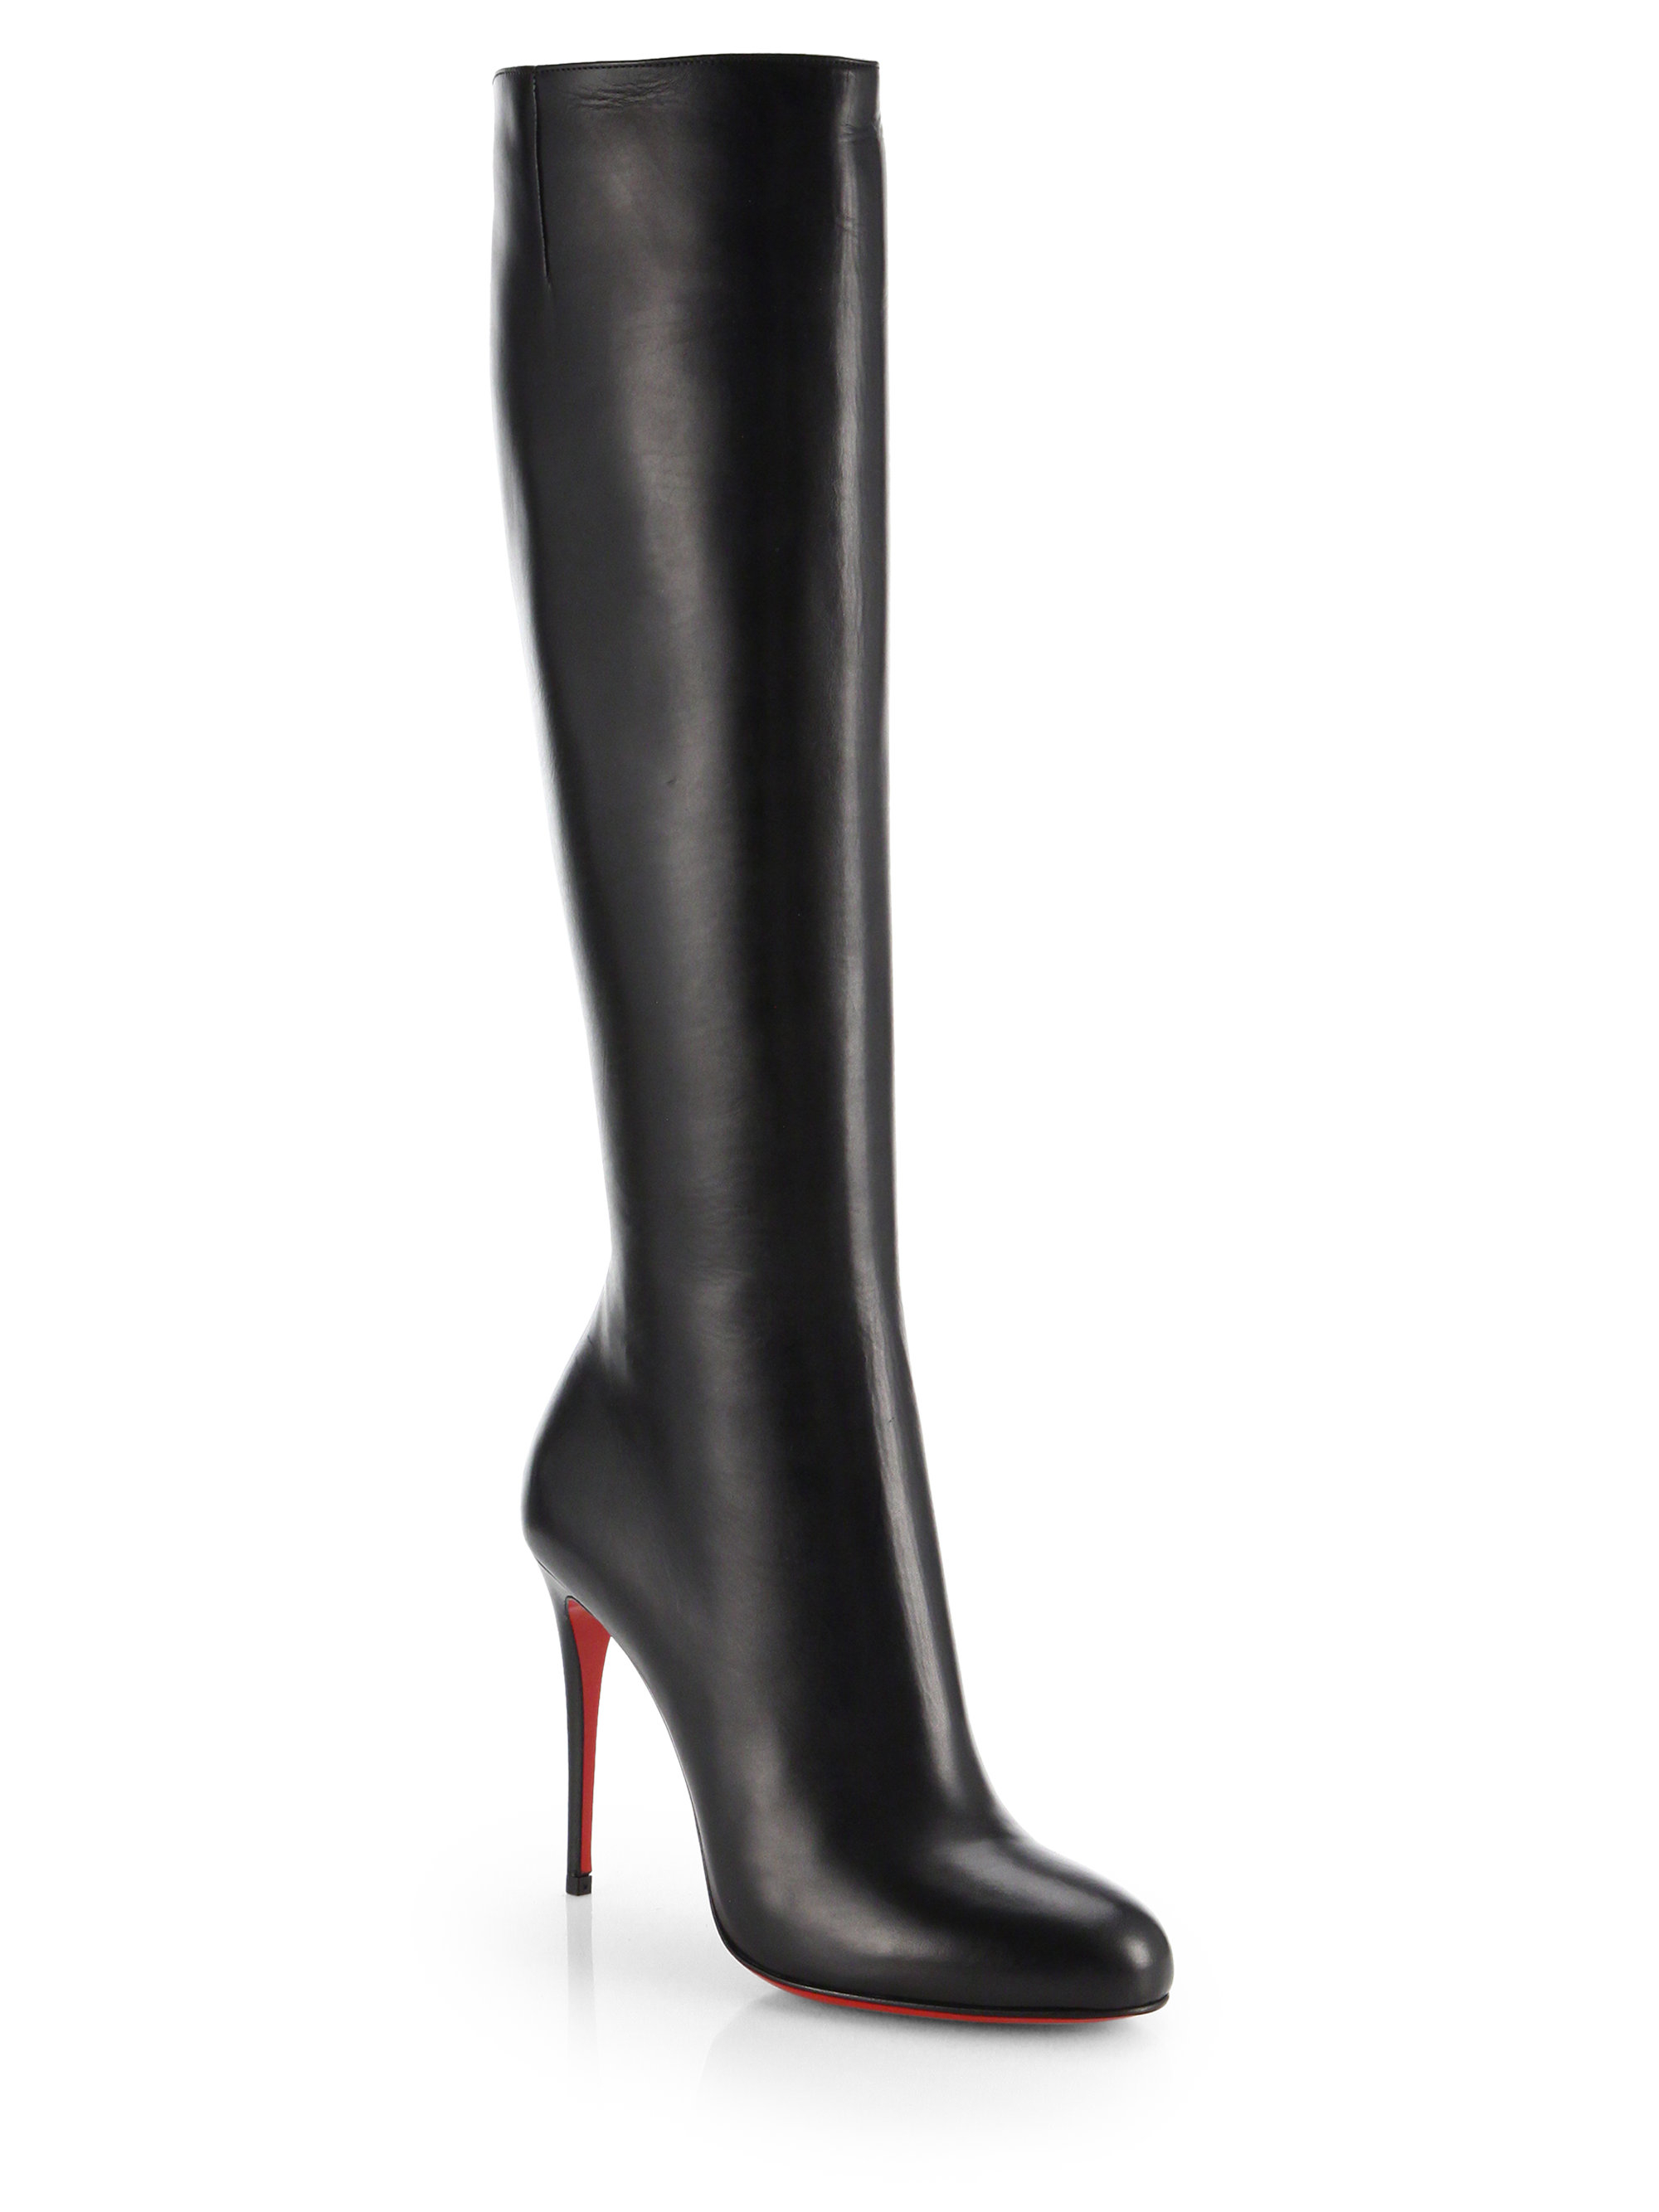 4f5ad7173d17 Lyst - Christian Louboutin Fifi Botta Suede Knee-high Boots in Black